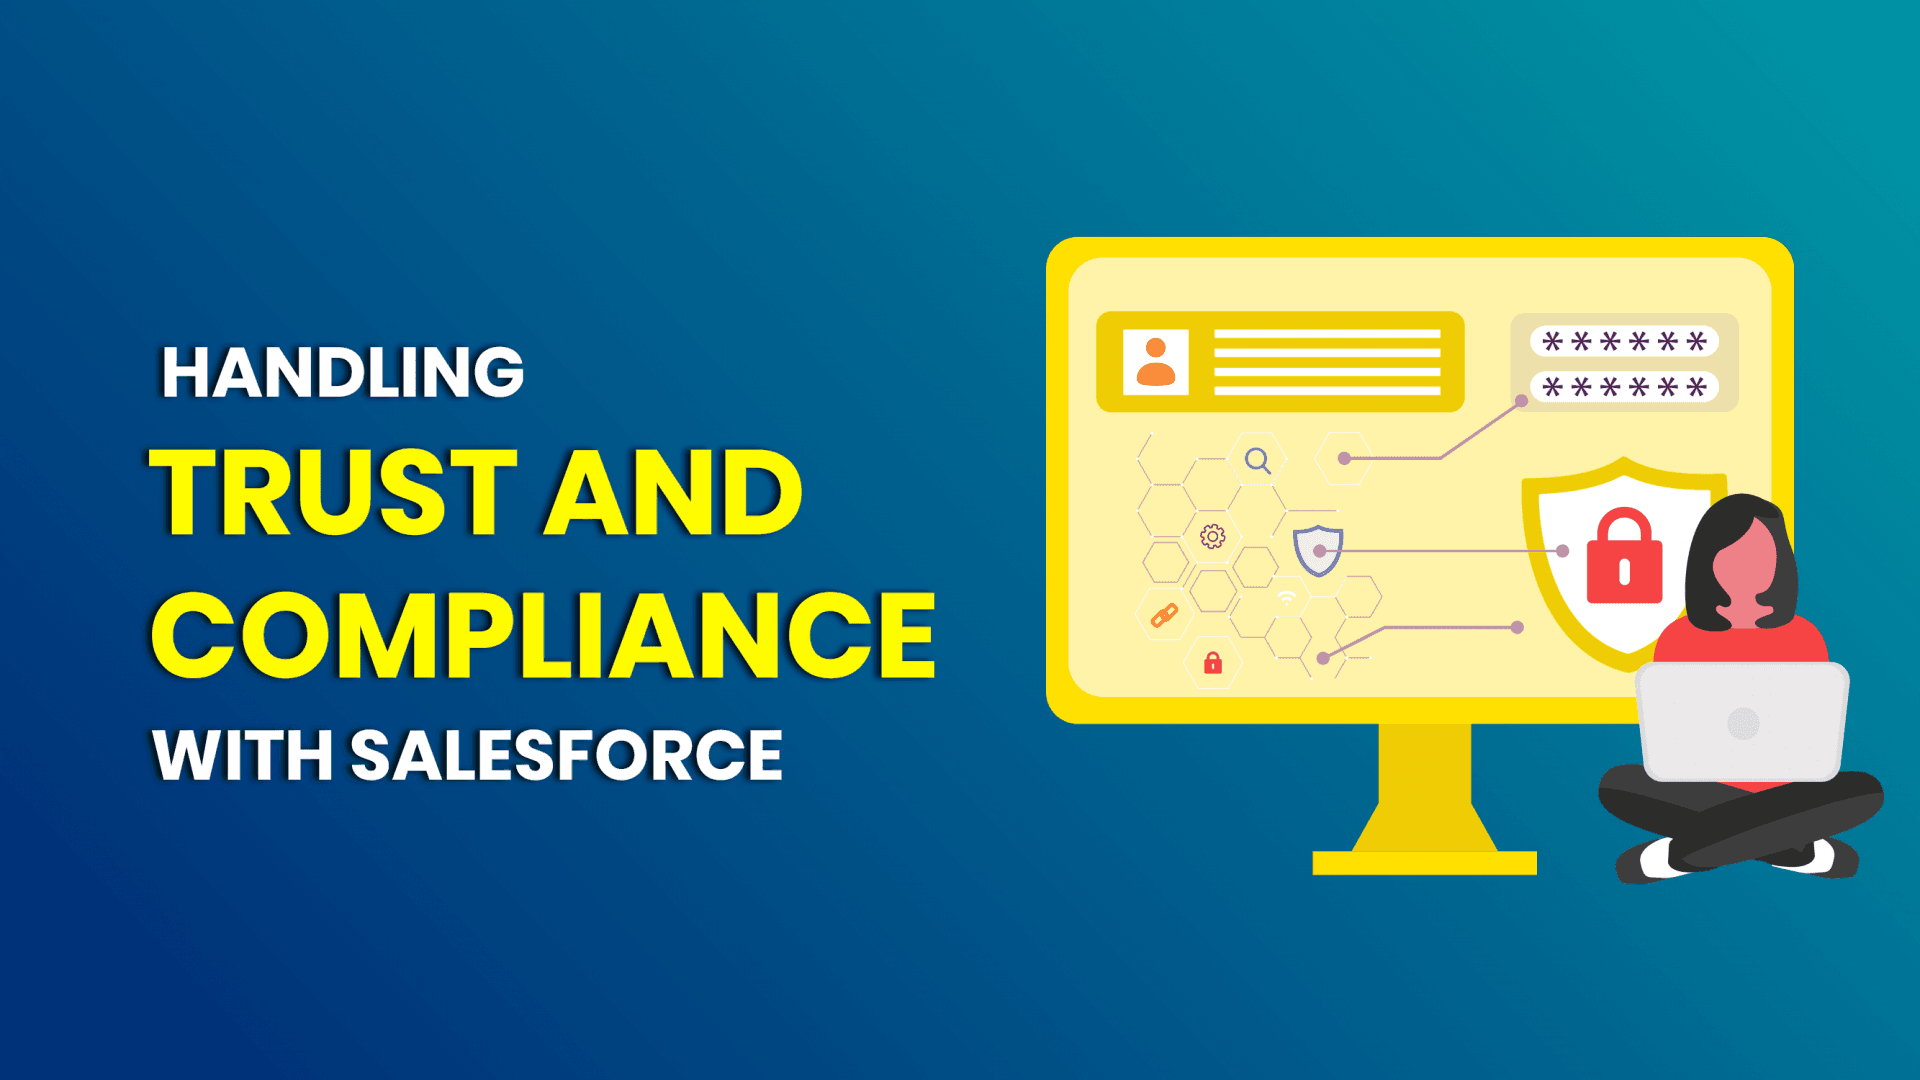 salesforce trust and compliance image